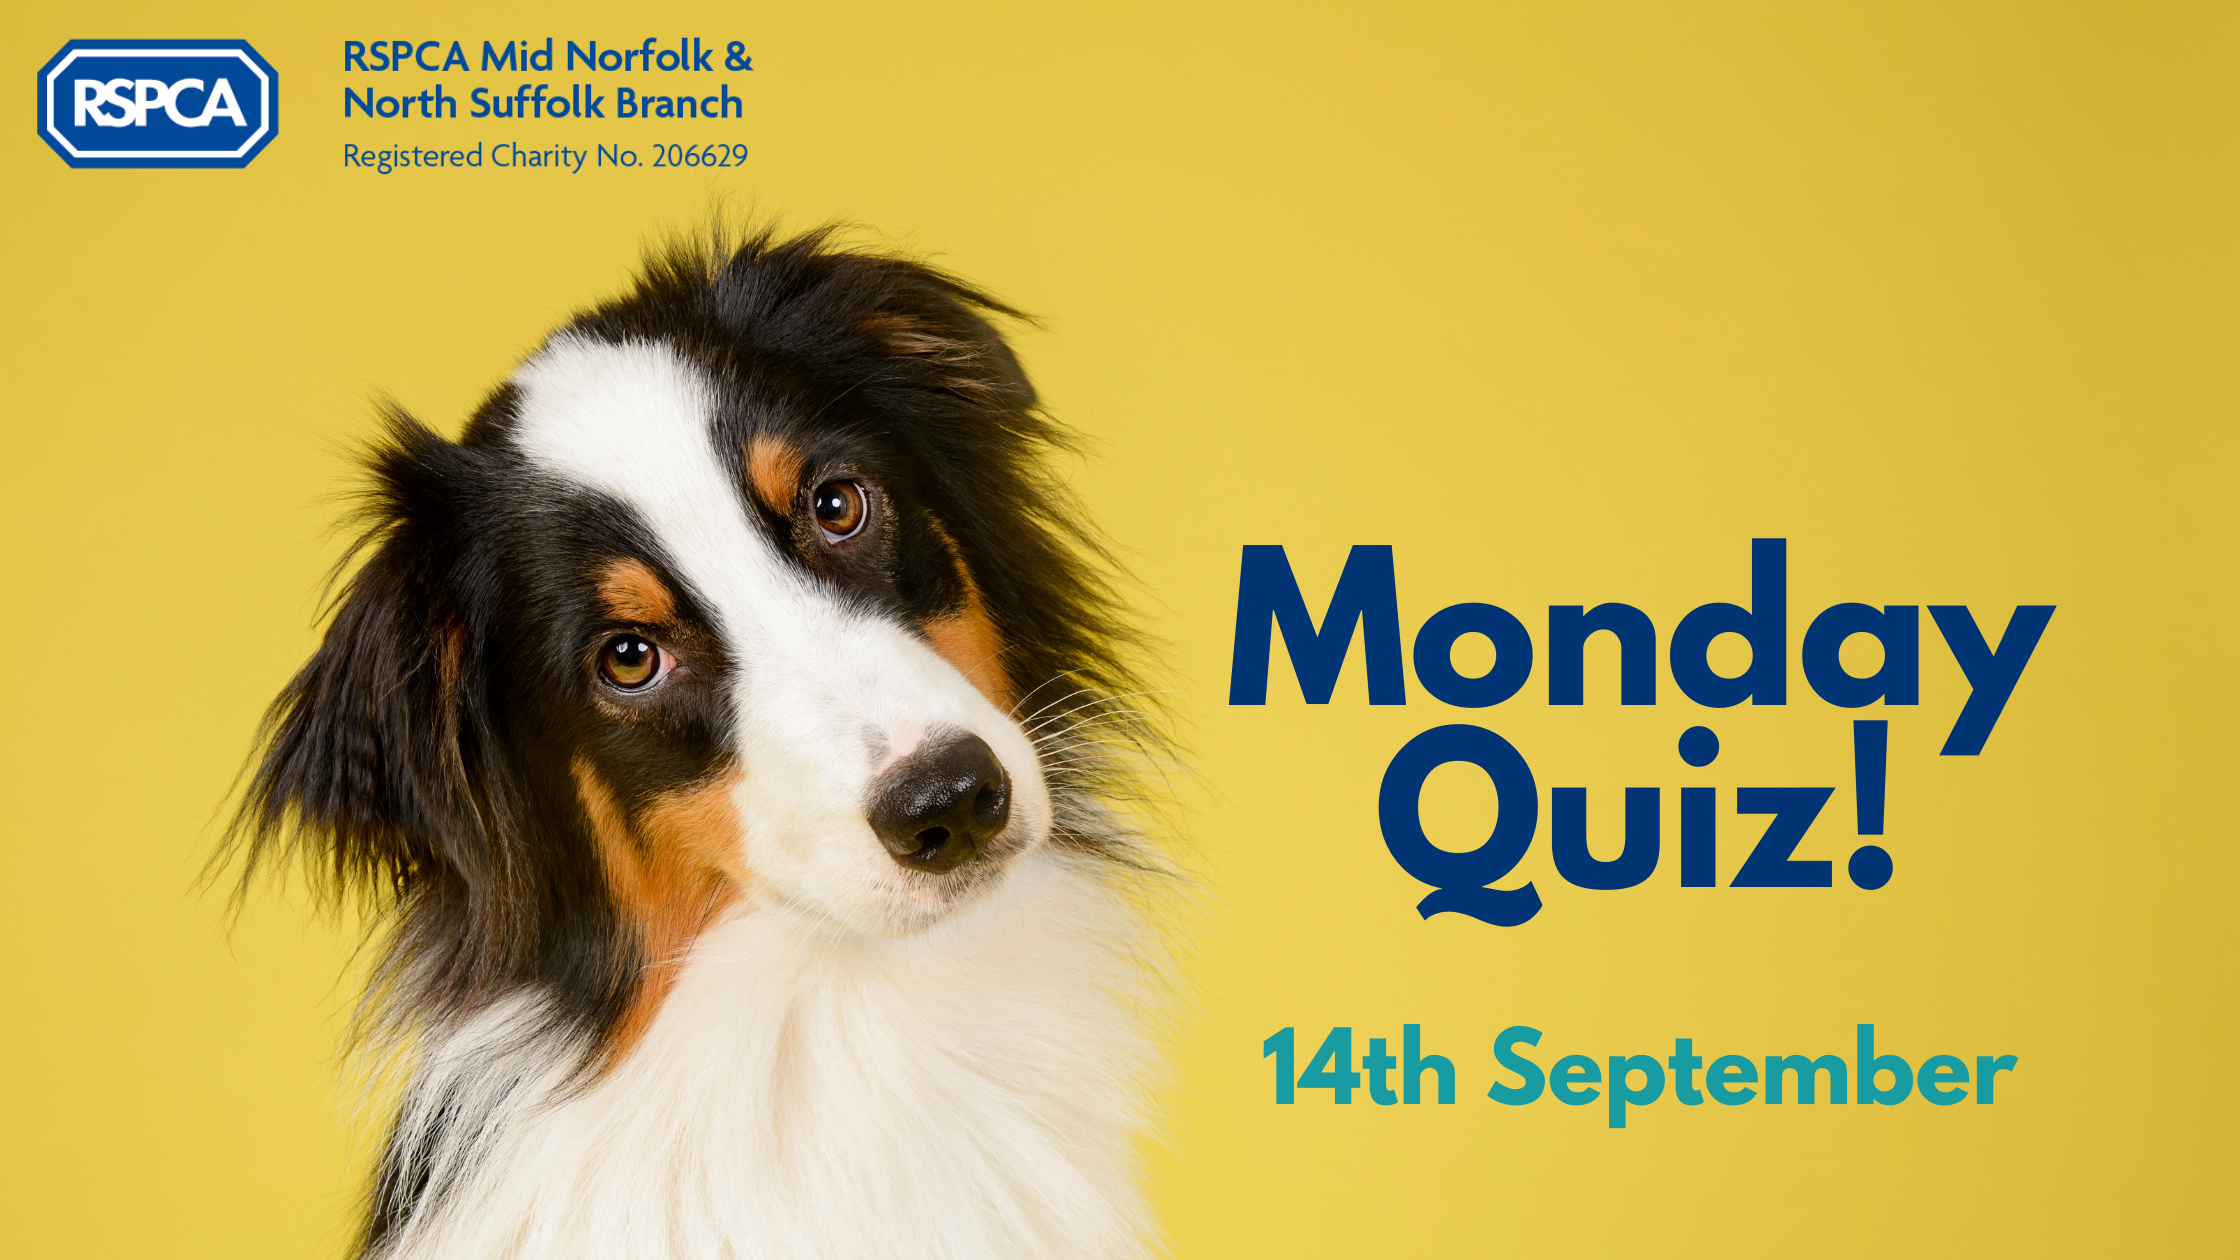 Monday Quiz! – 14th September